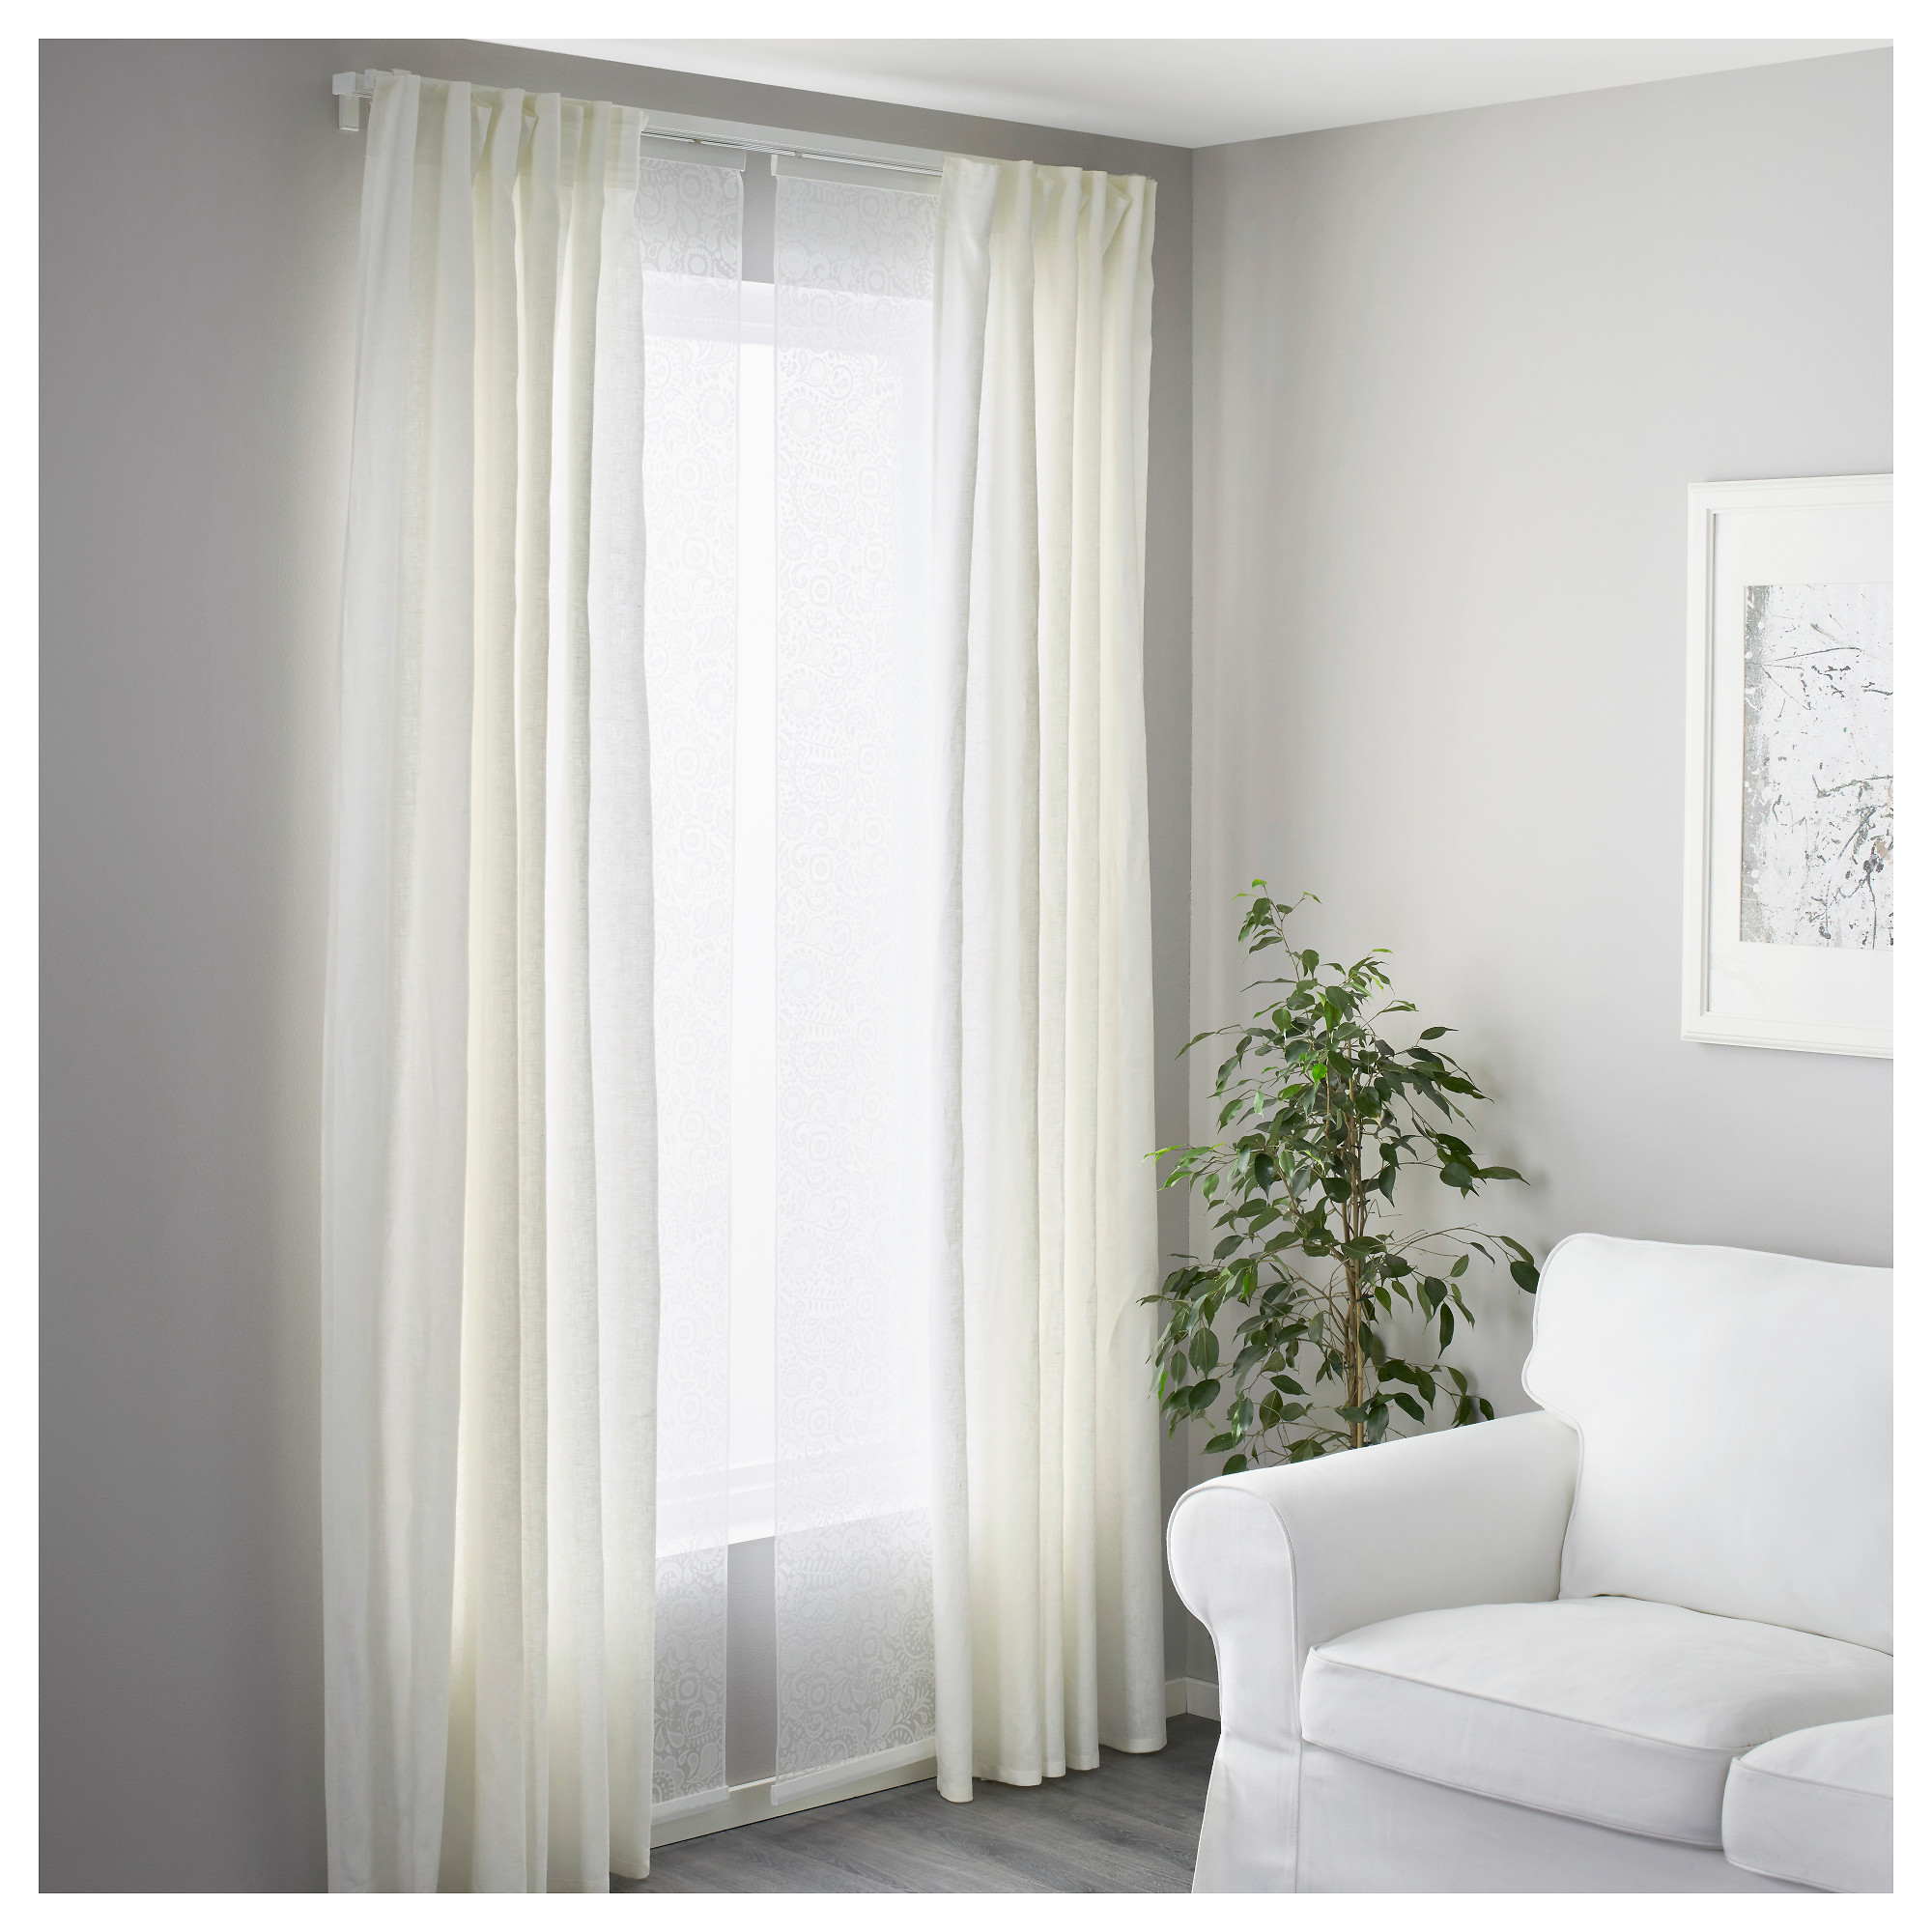 ceiling home curtains design ikea mount ideas track curtain